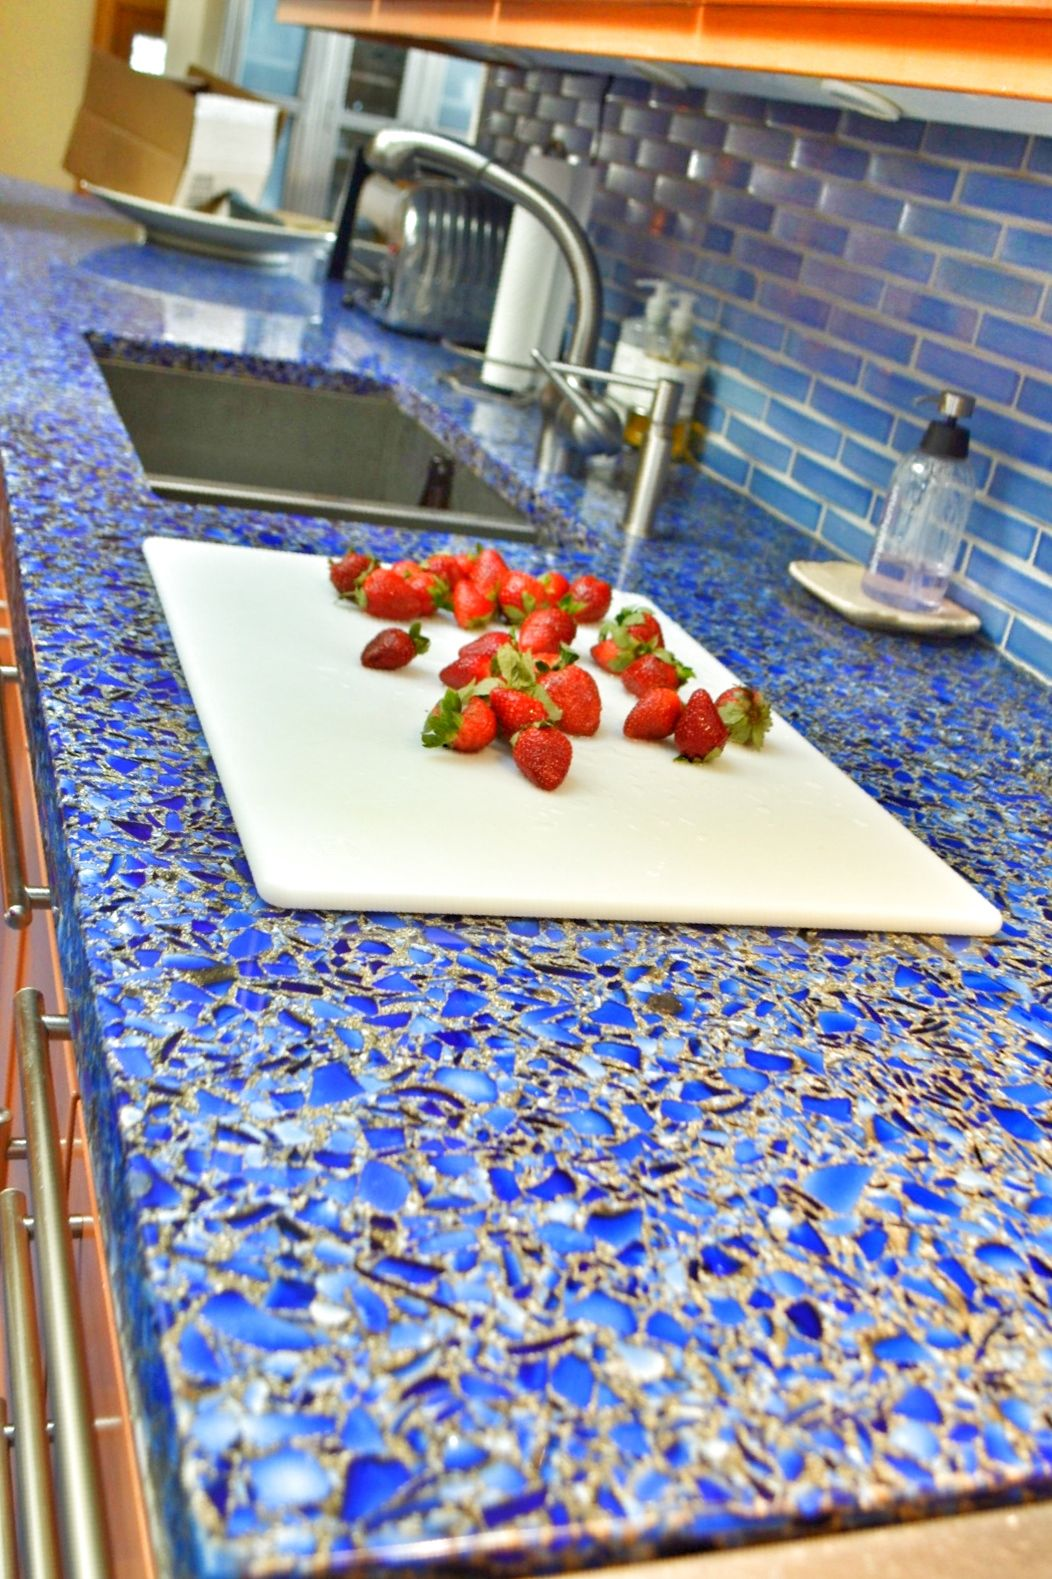 Recycled Glass Kitchen Countertops Home Depot Faucets Moen Cobalt Skyy Patina Vetrazzo Pinterest